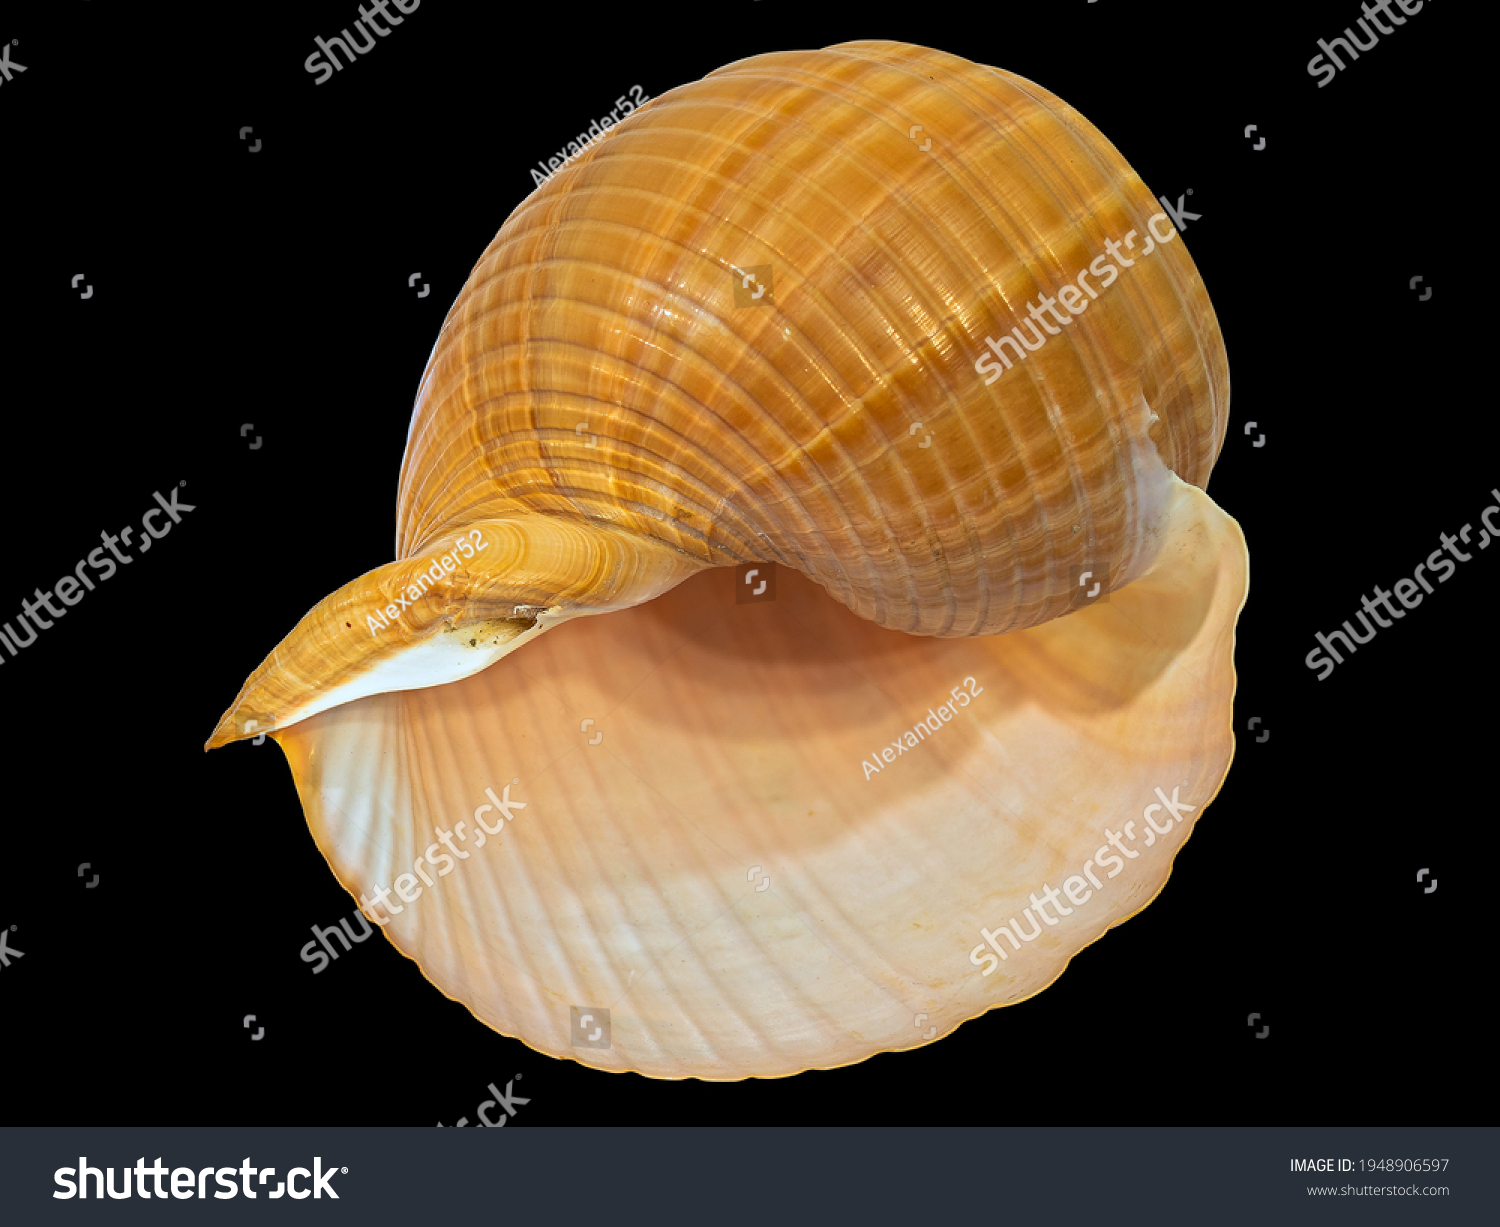 The Shell of the Land Gastropod Mollusk Achatina Fulica (Latin Name). Isolated On Black Background  #1948906597